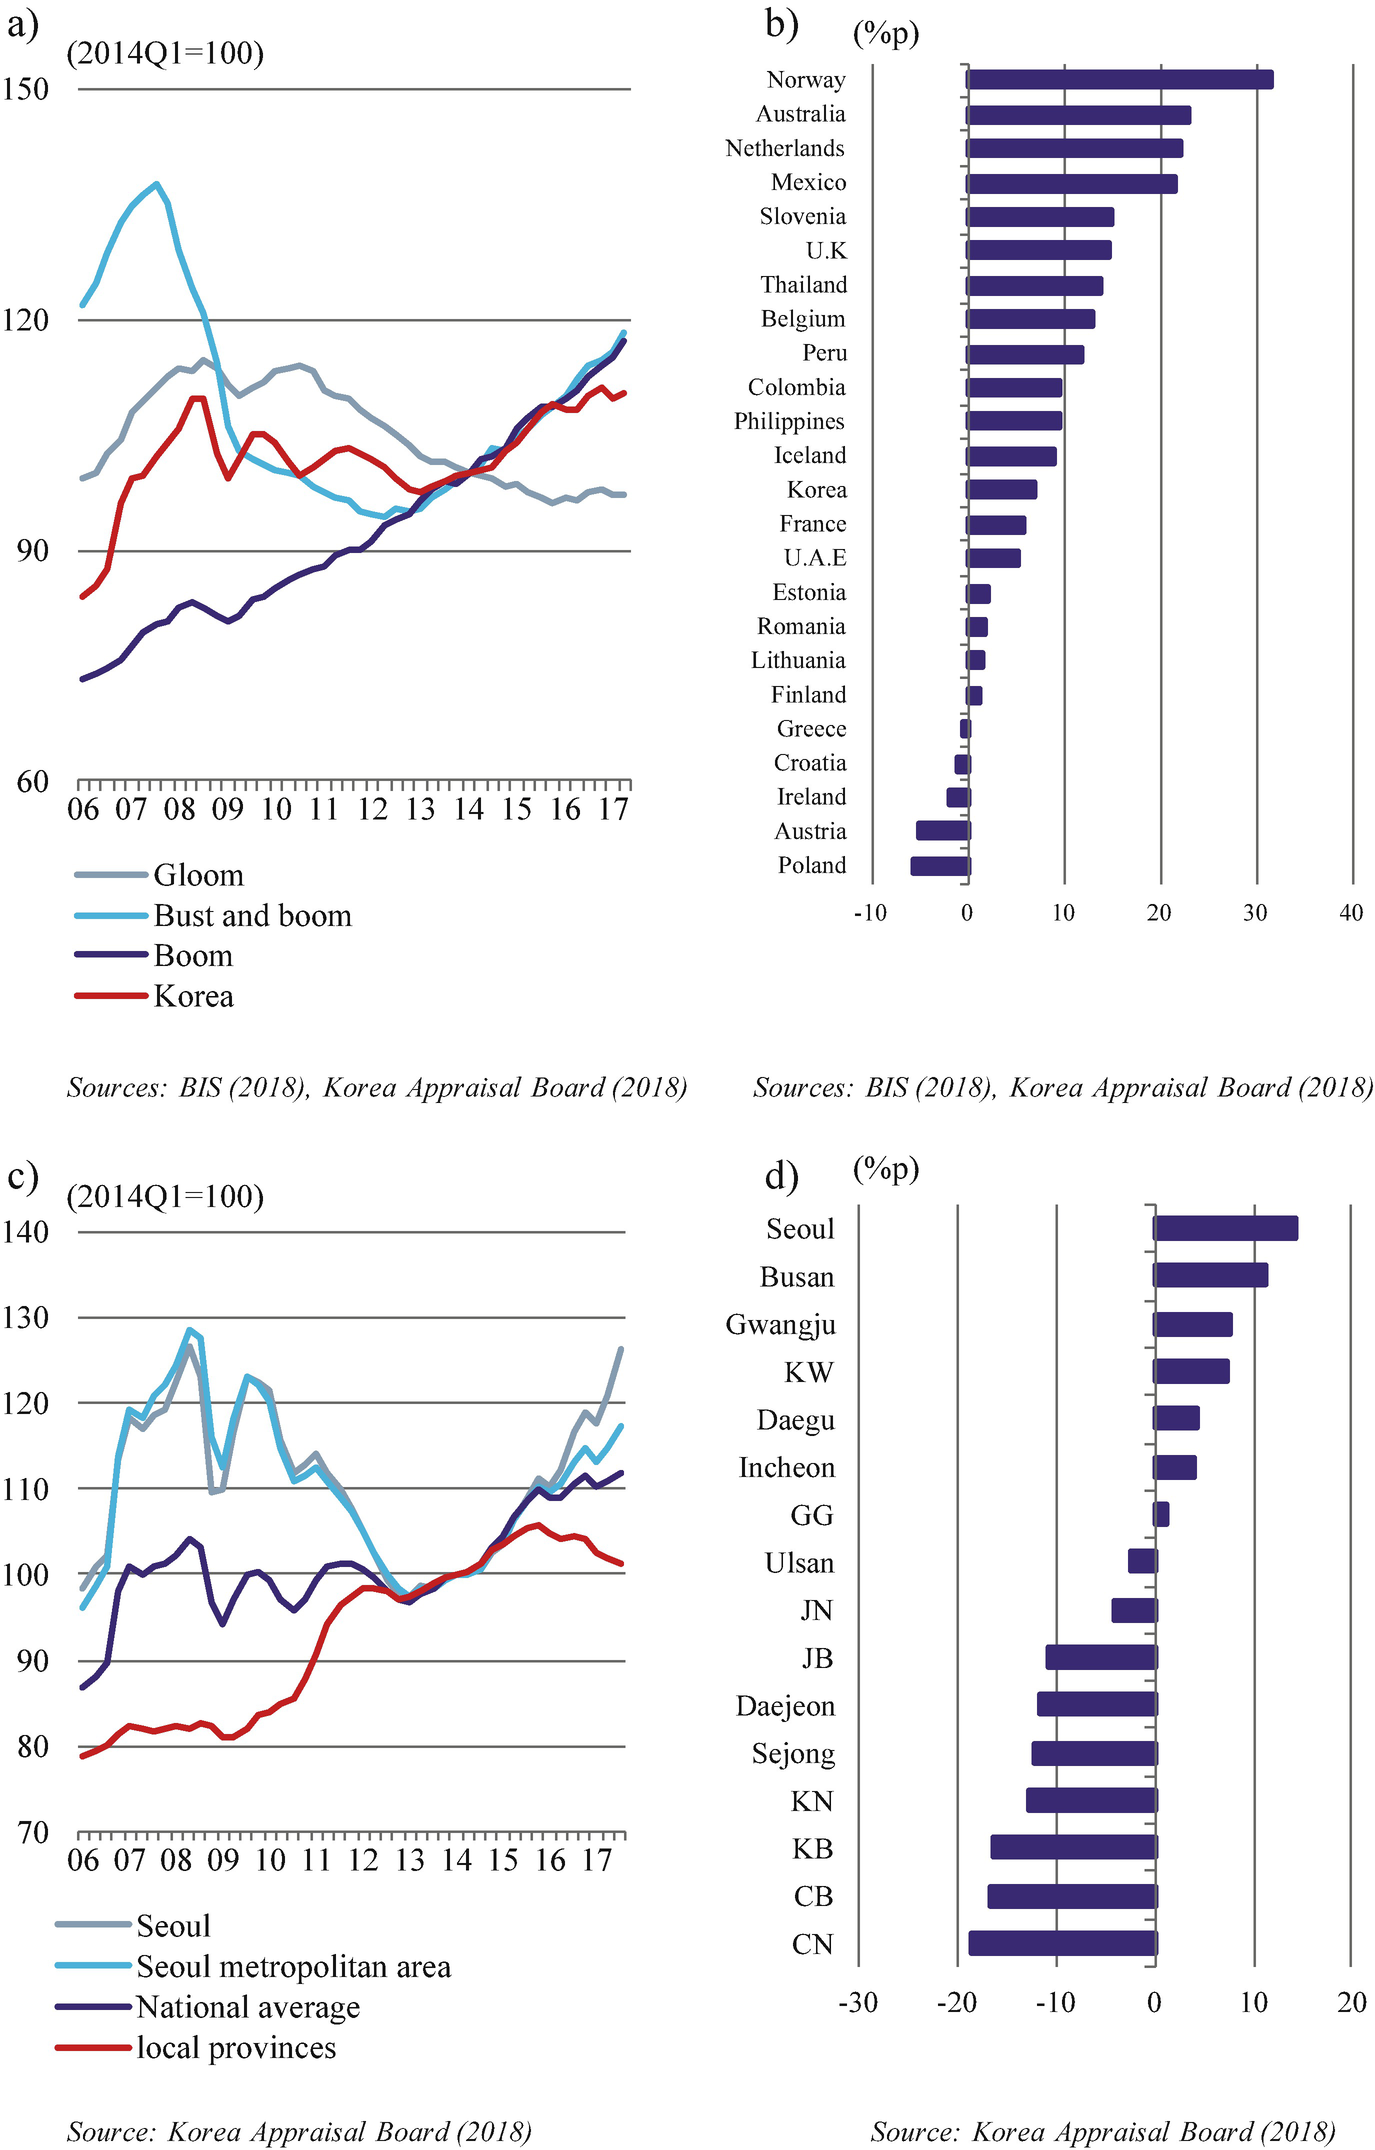 The Korean Housing Market Its Characteristics and Policy ...